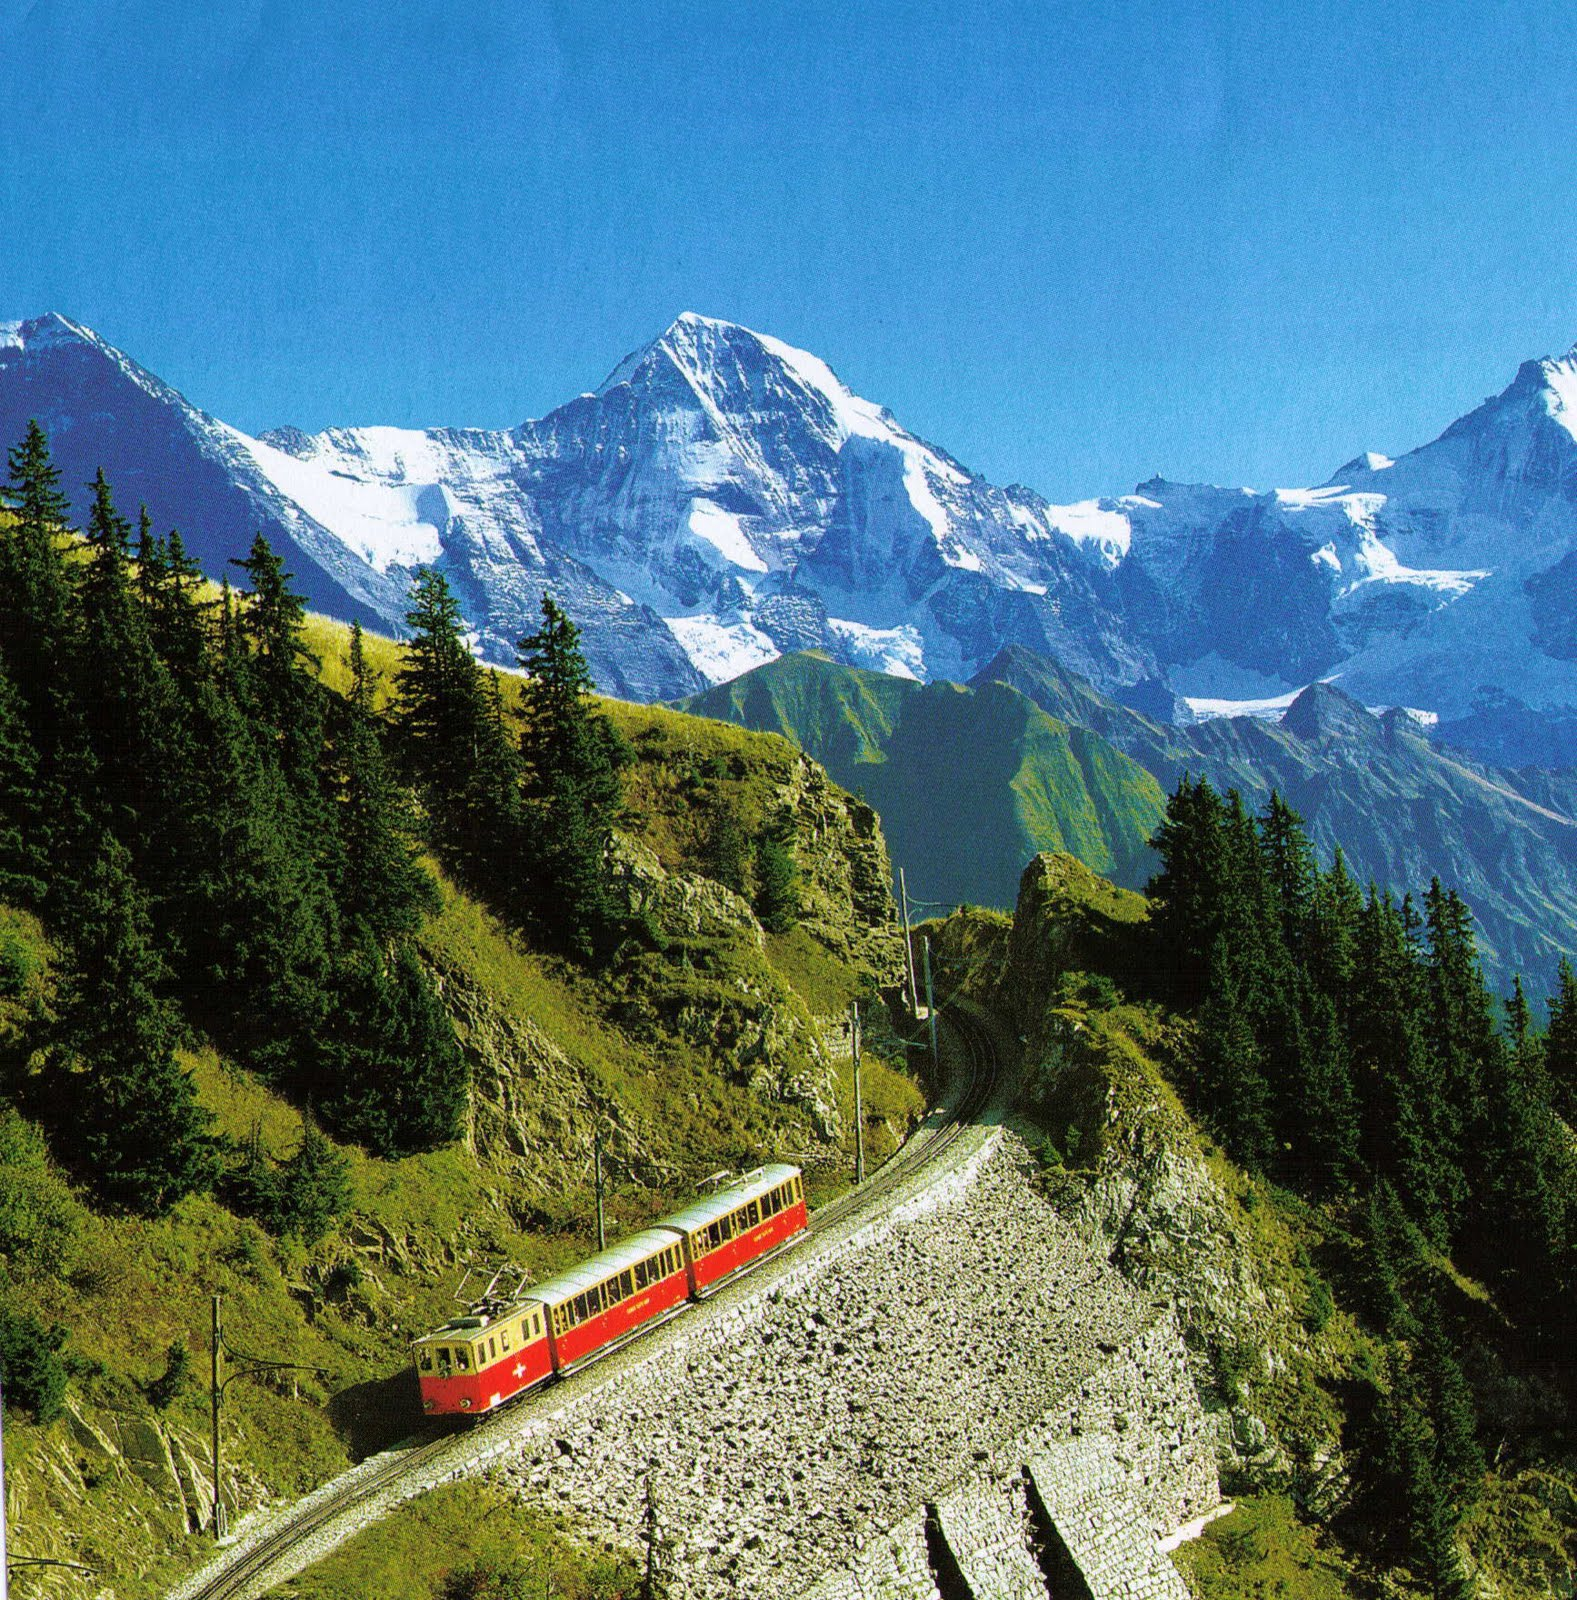 Places To Visit In Switzerland Blog: Transpress Nz: Travel By Rail In Switzerland And Europe